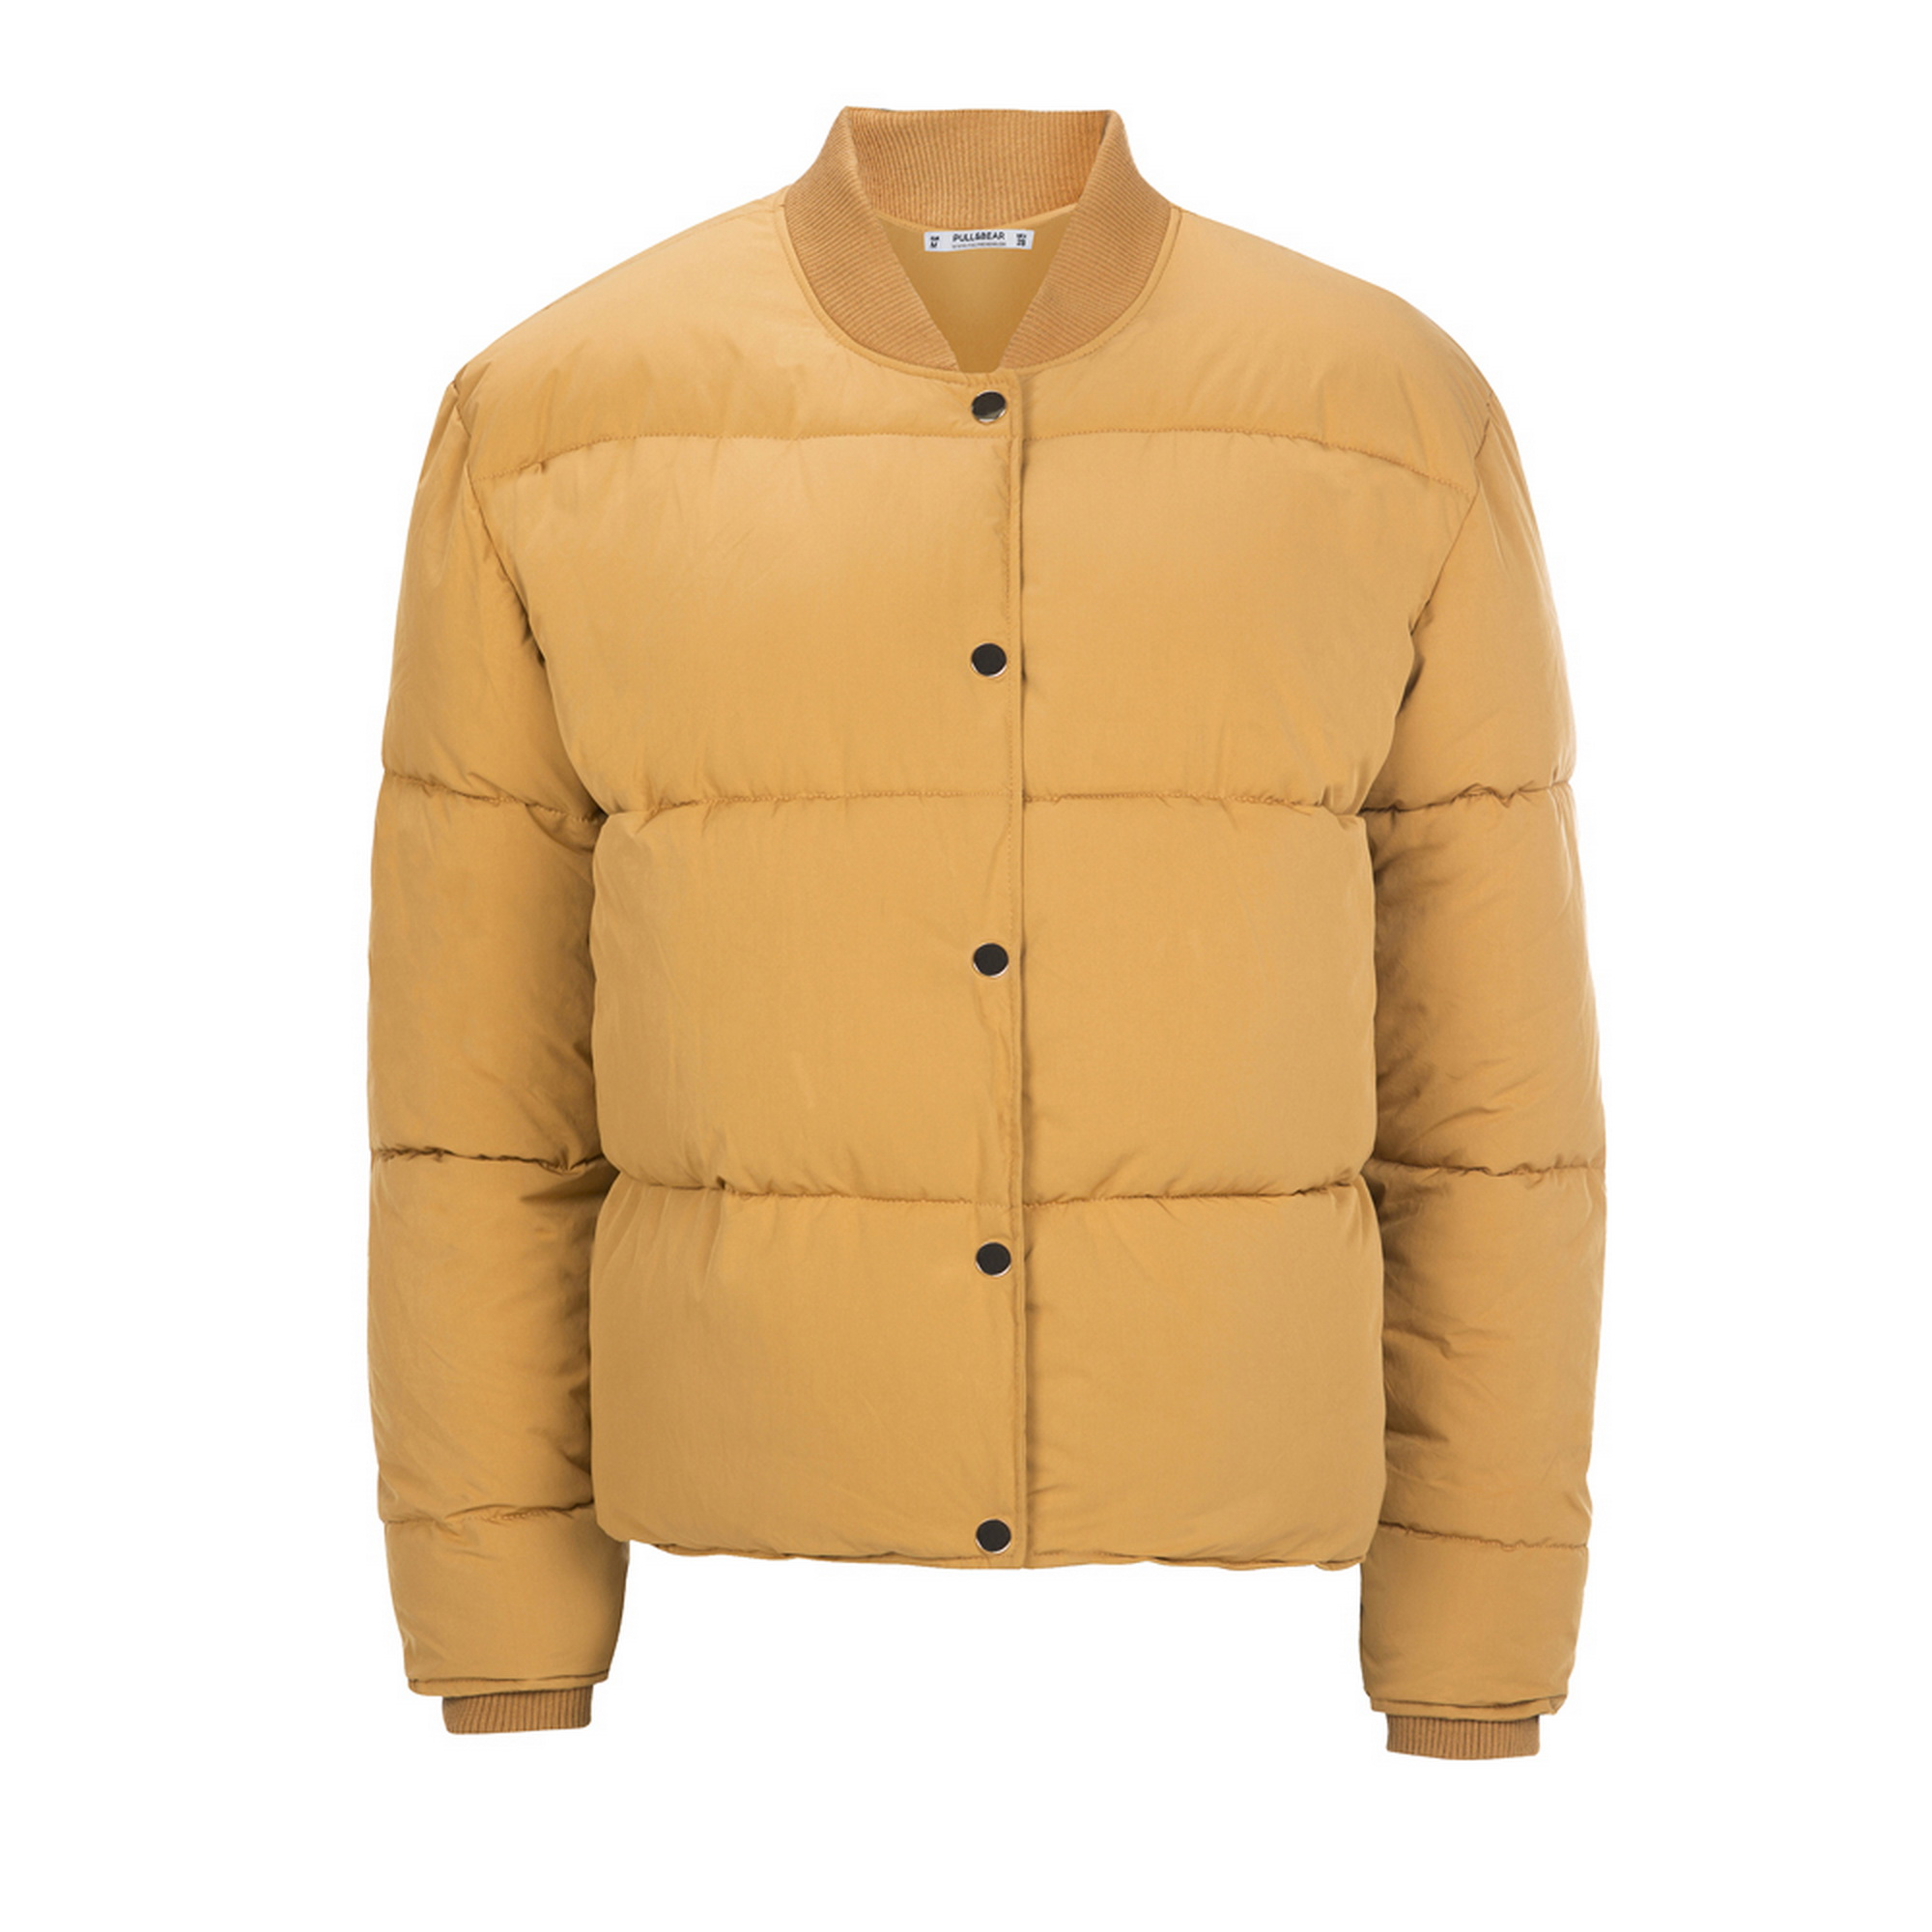 pull and bear 269ILS